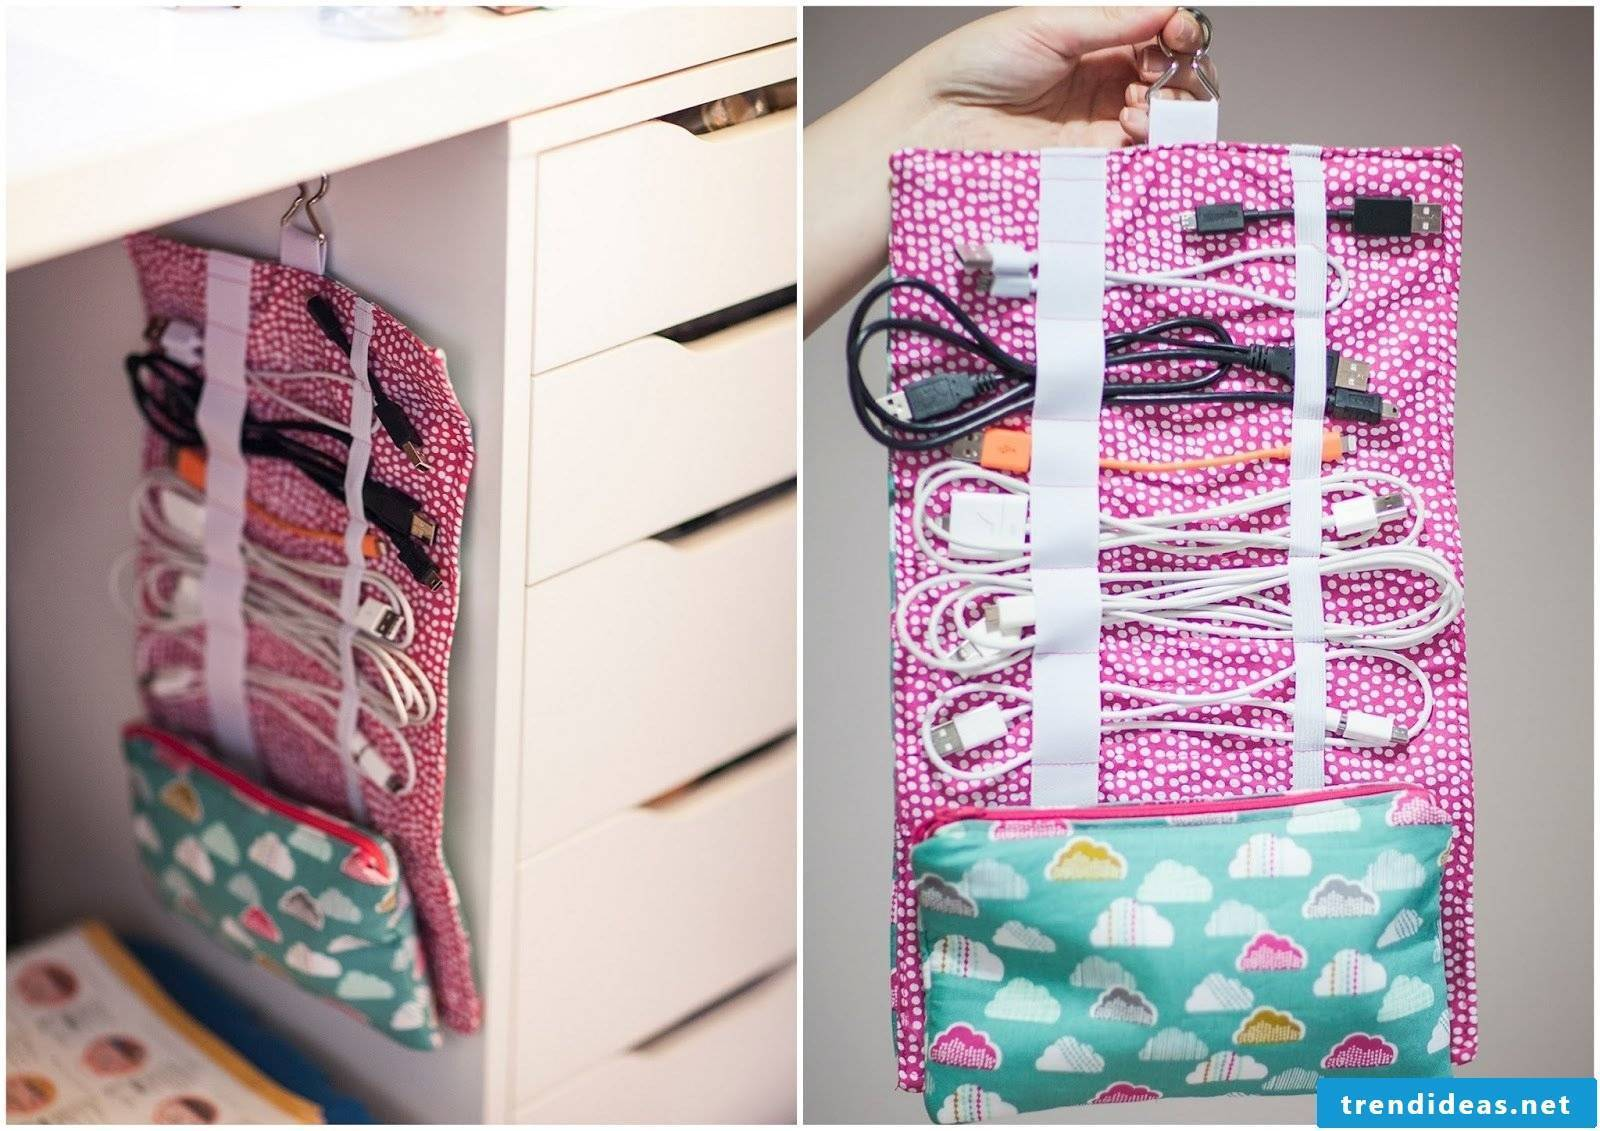 No clutter anymore, here's a creative sewing idea